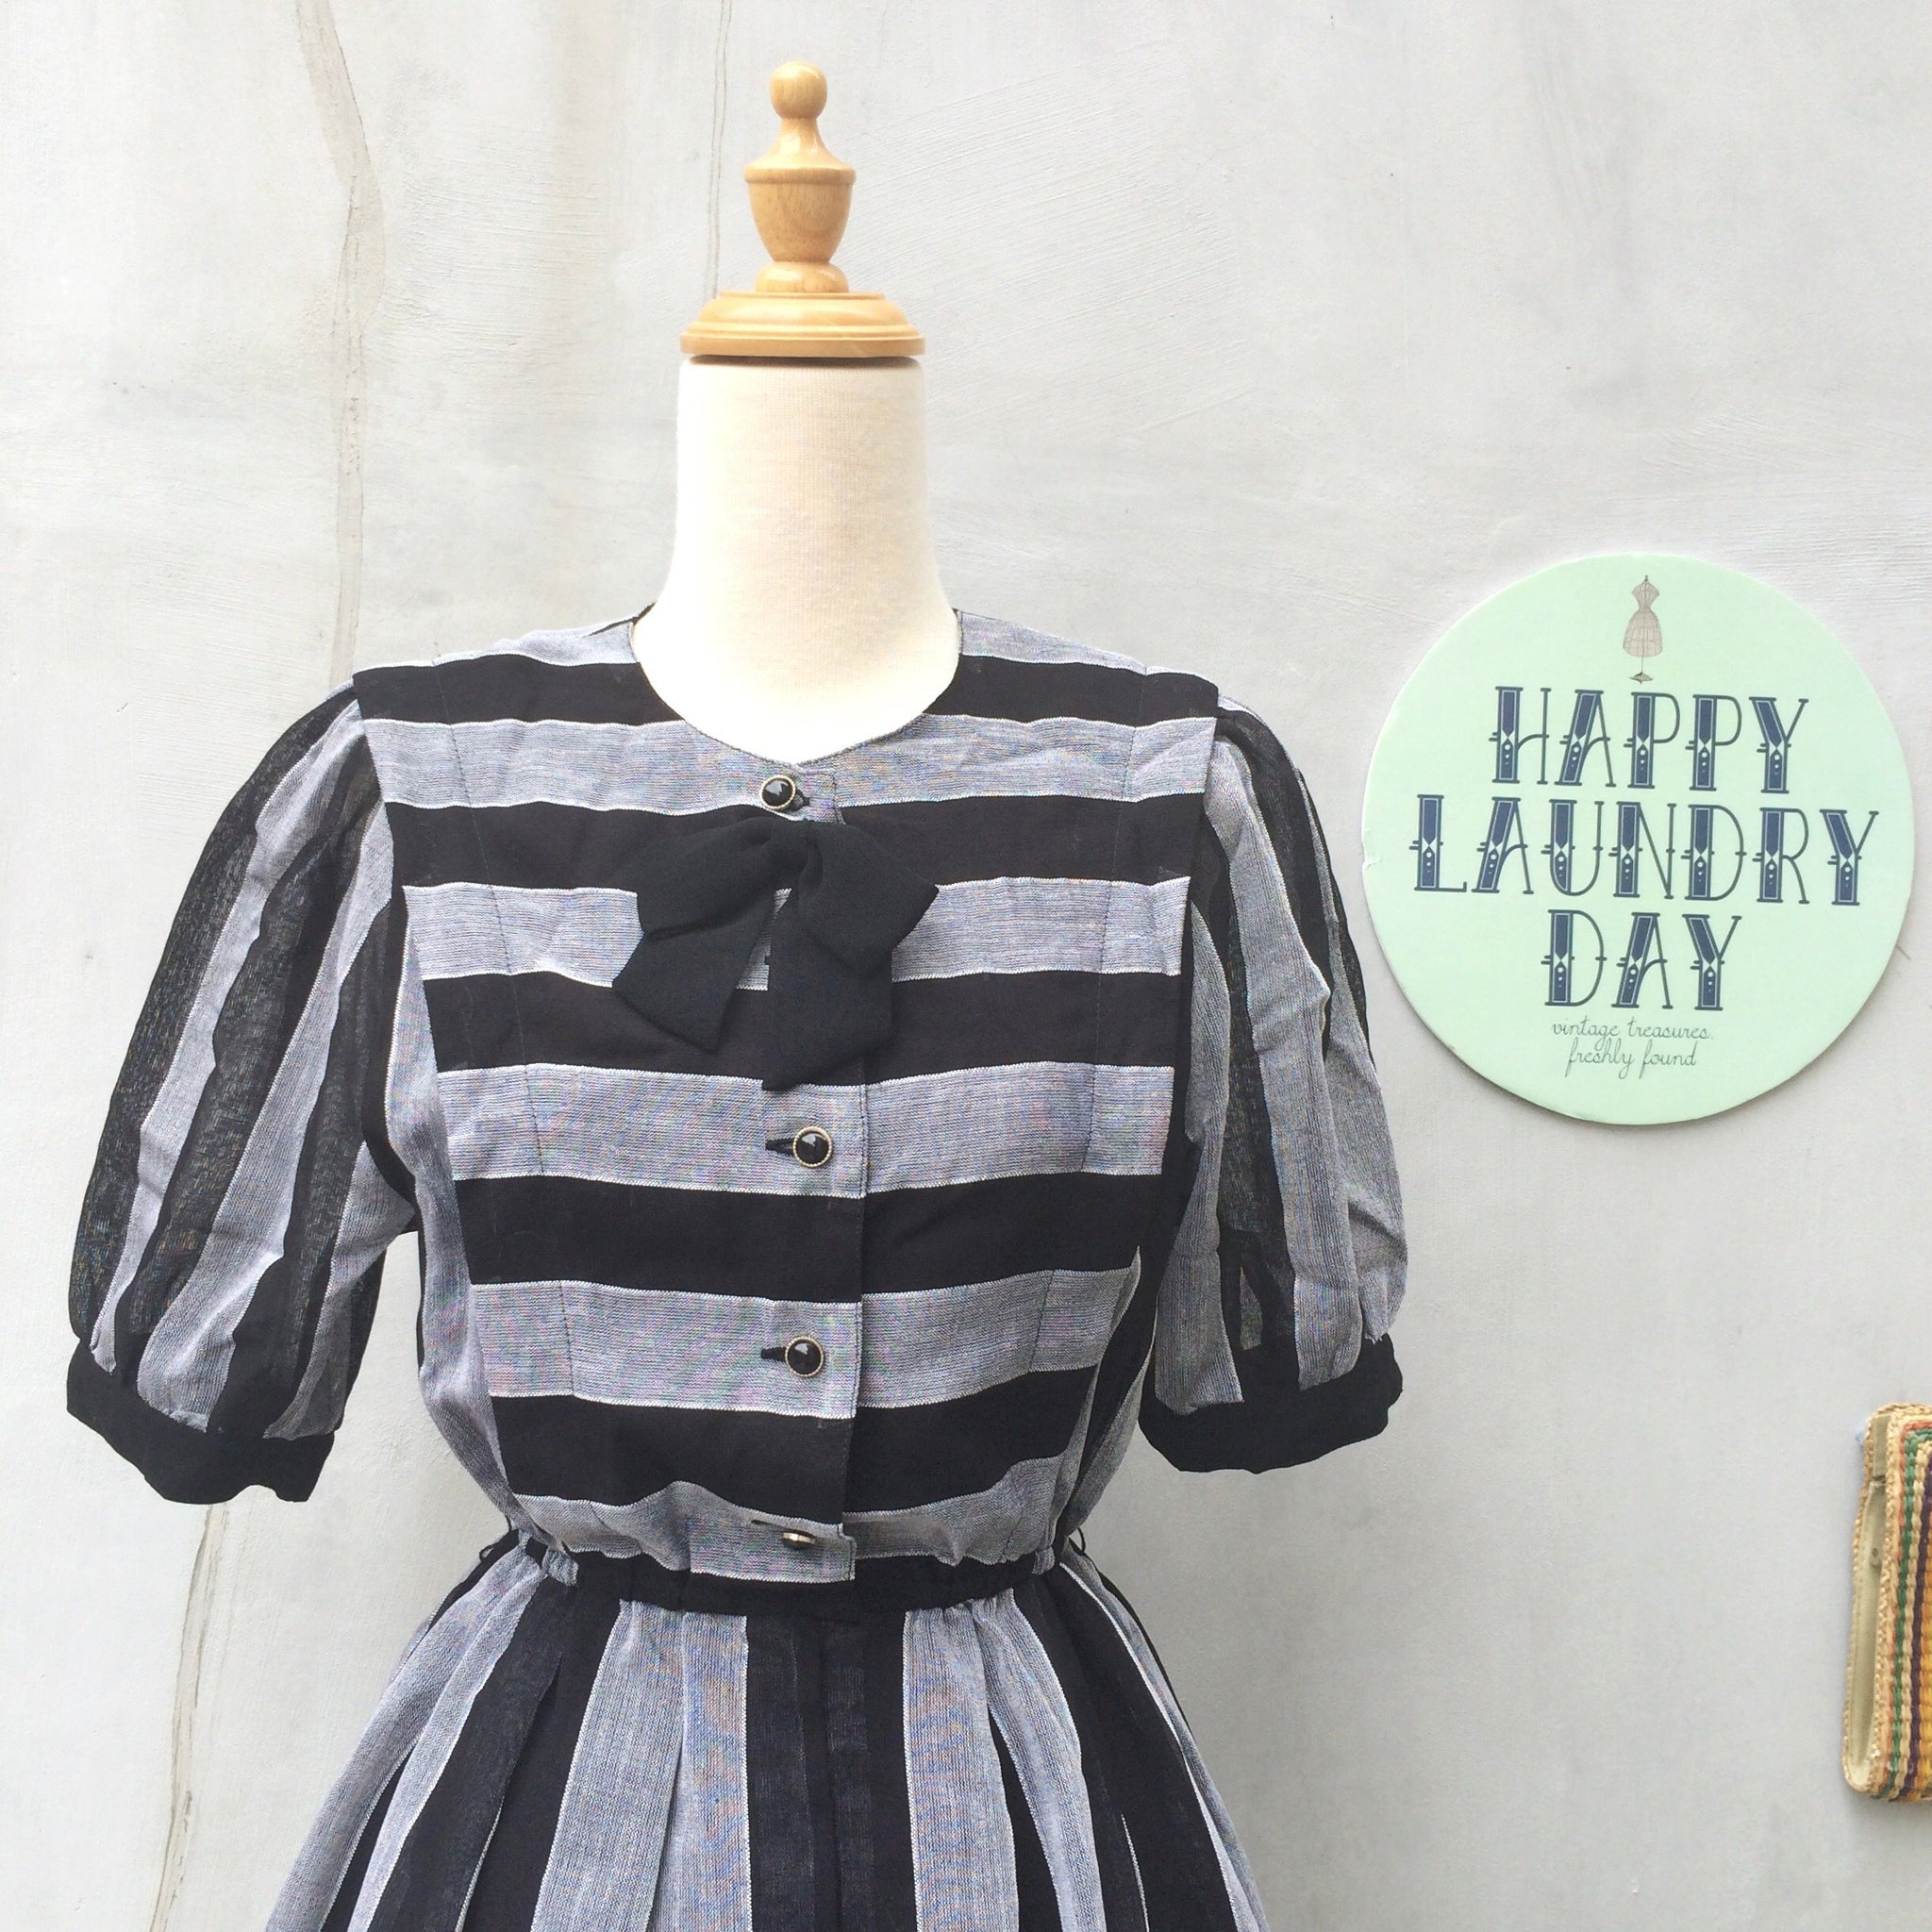 Little Bow-peep | Vintage 1950s vertical stripe Day dress with Black bow-brooch